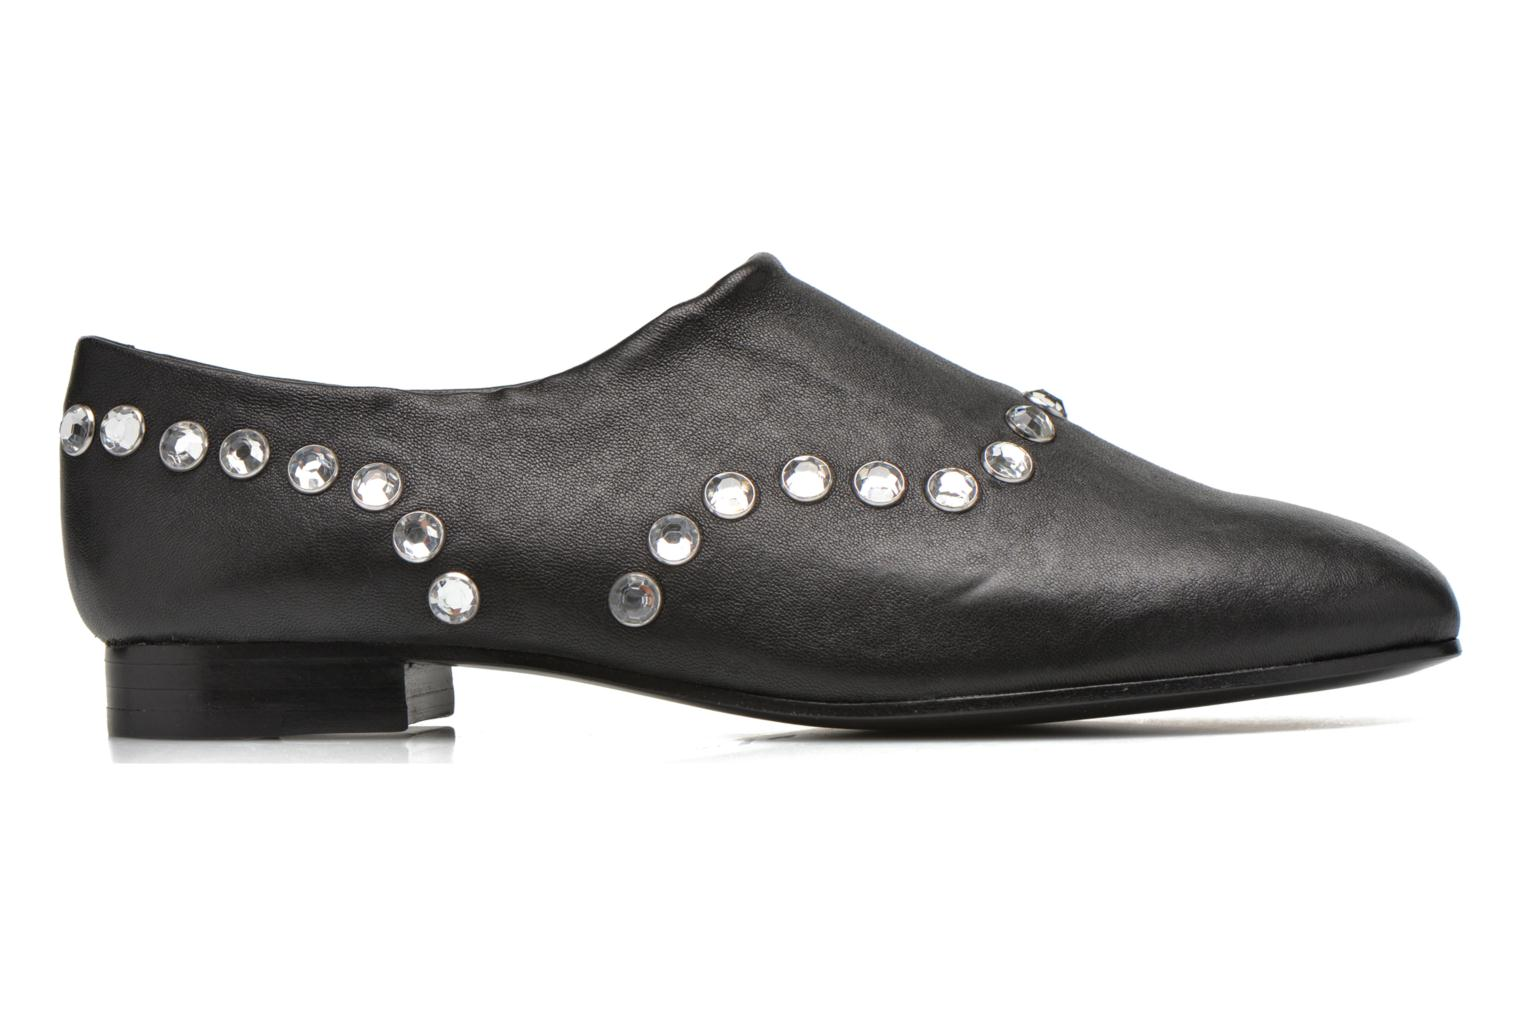 CHARLY Black Stretch Embellished leather